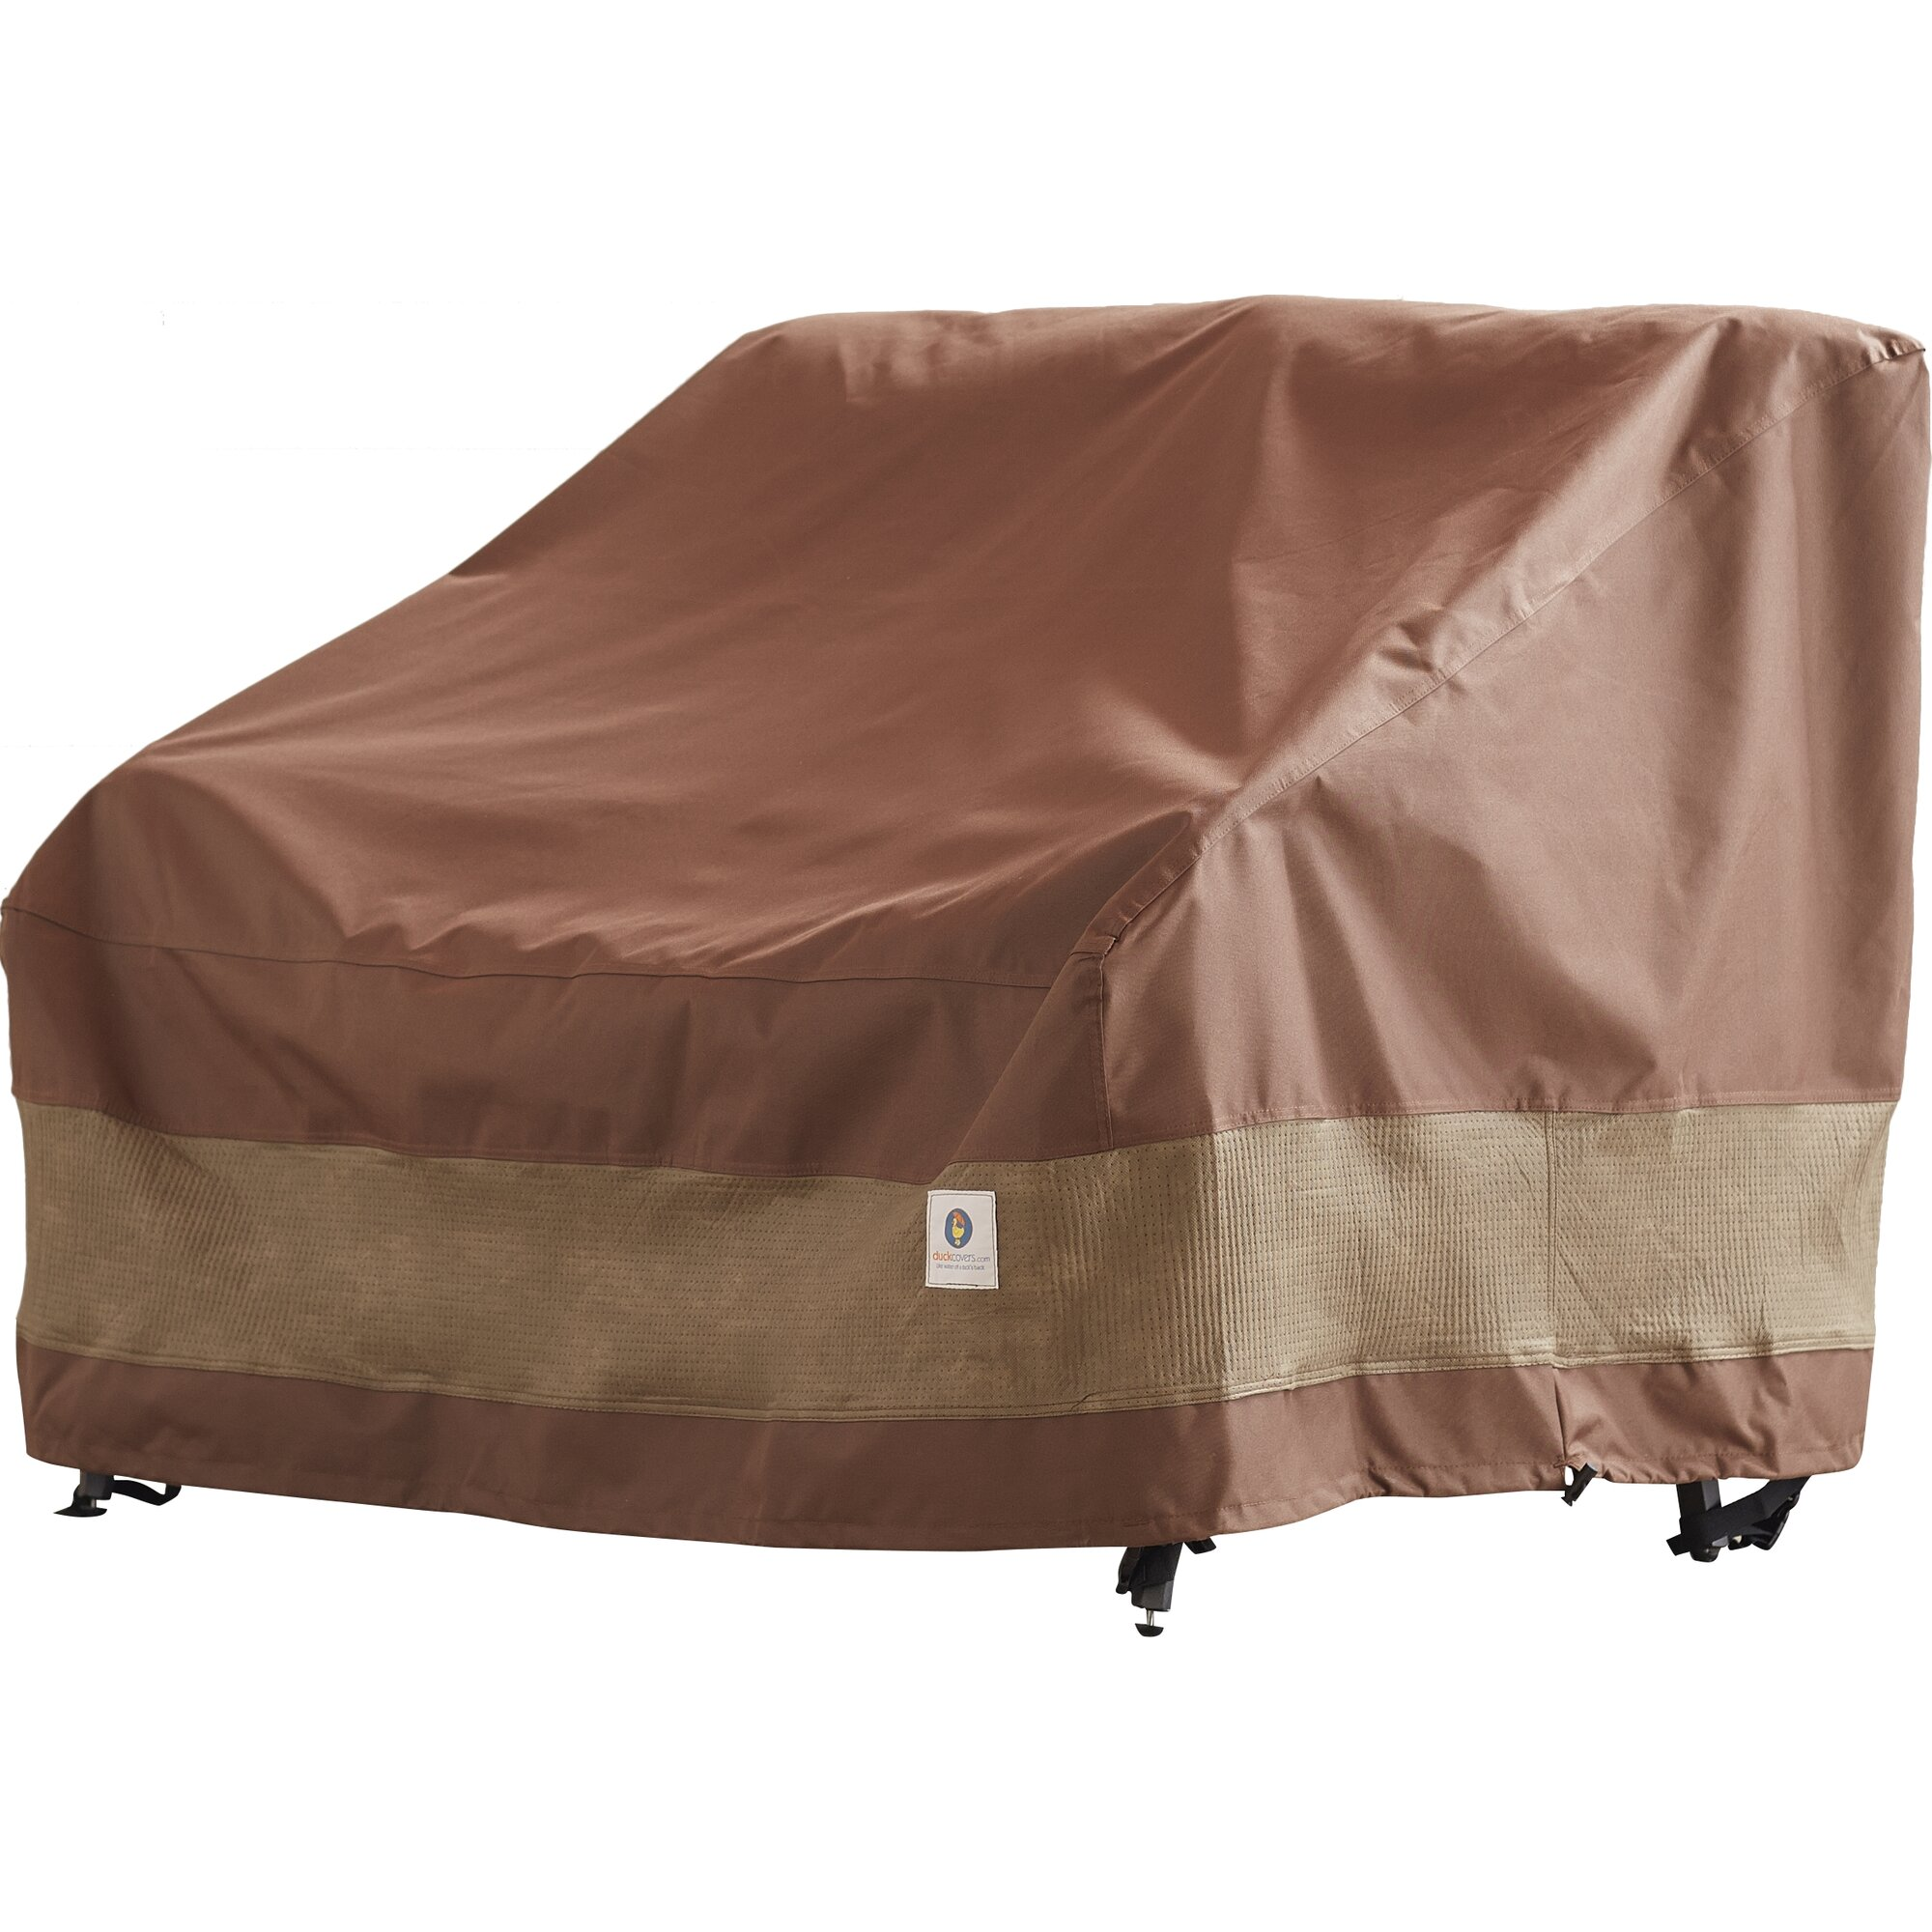 Symple Stuff Ultimate Patio Loveseat Cover & Reviews